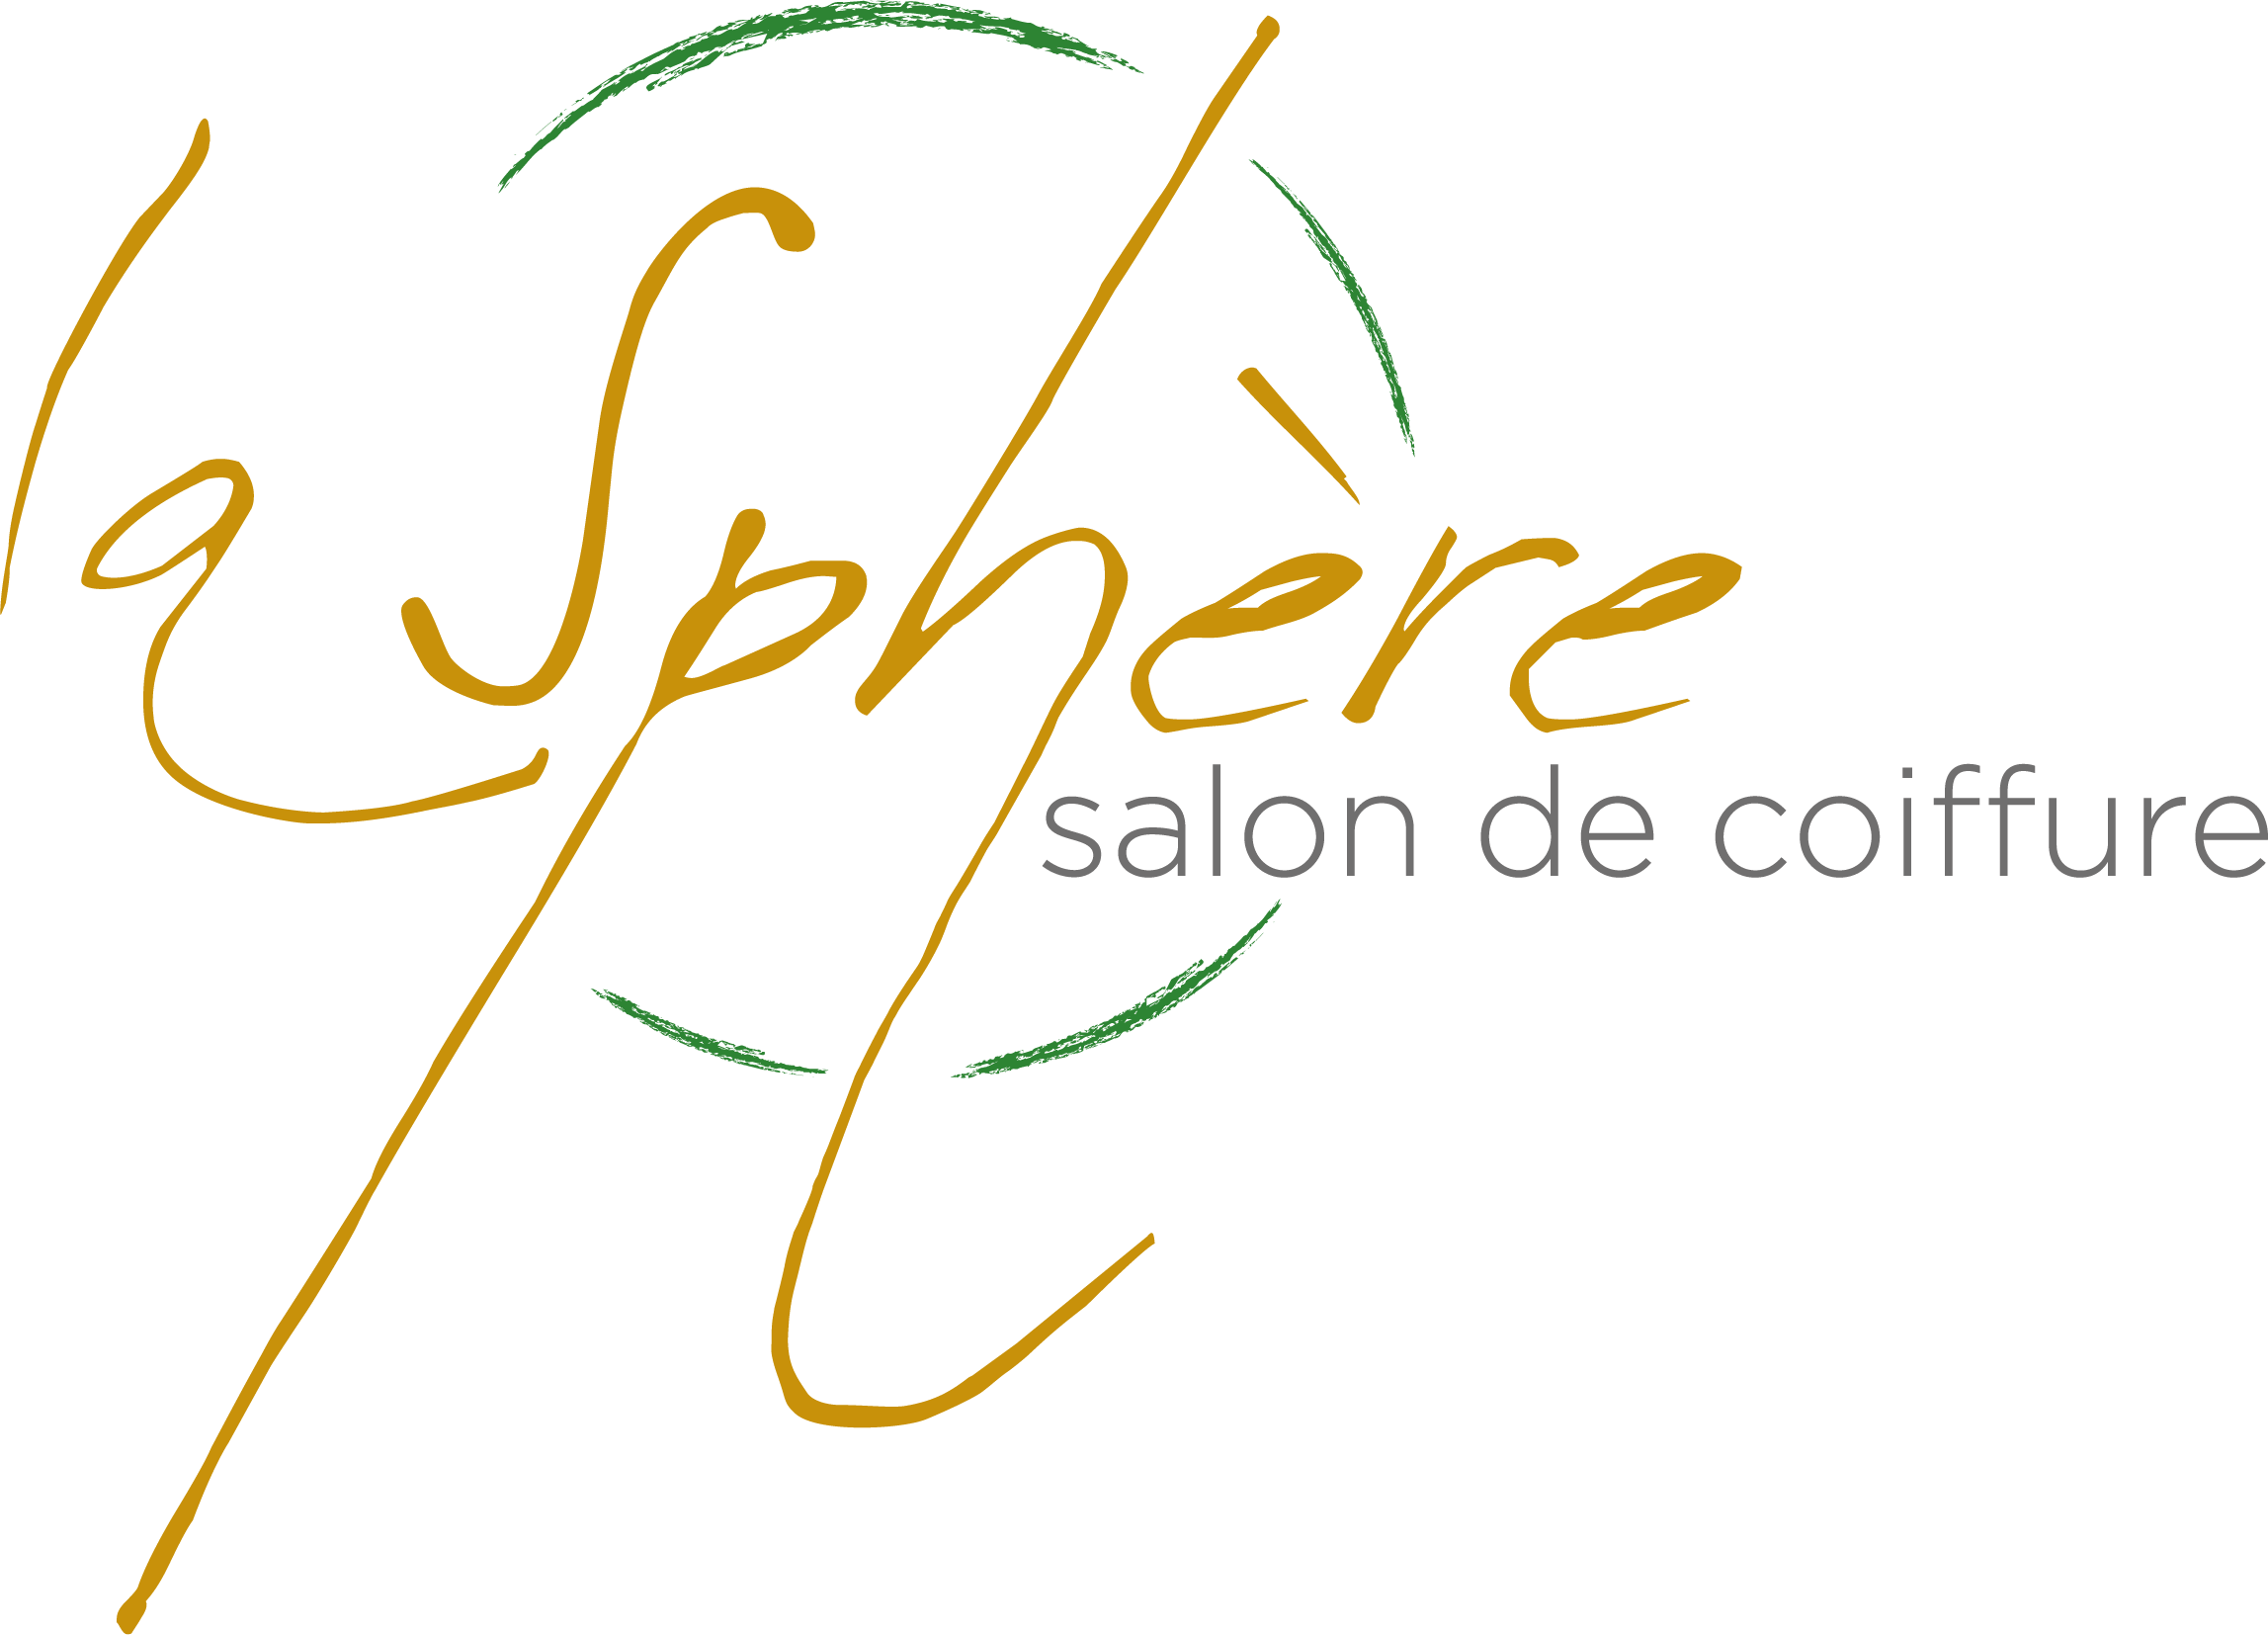 La sphere logo quadri big